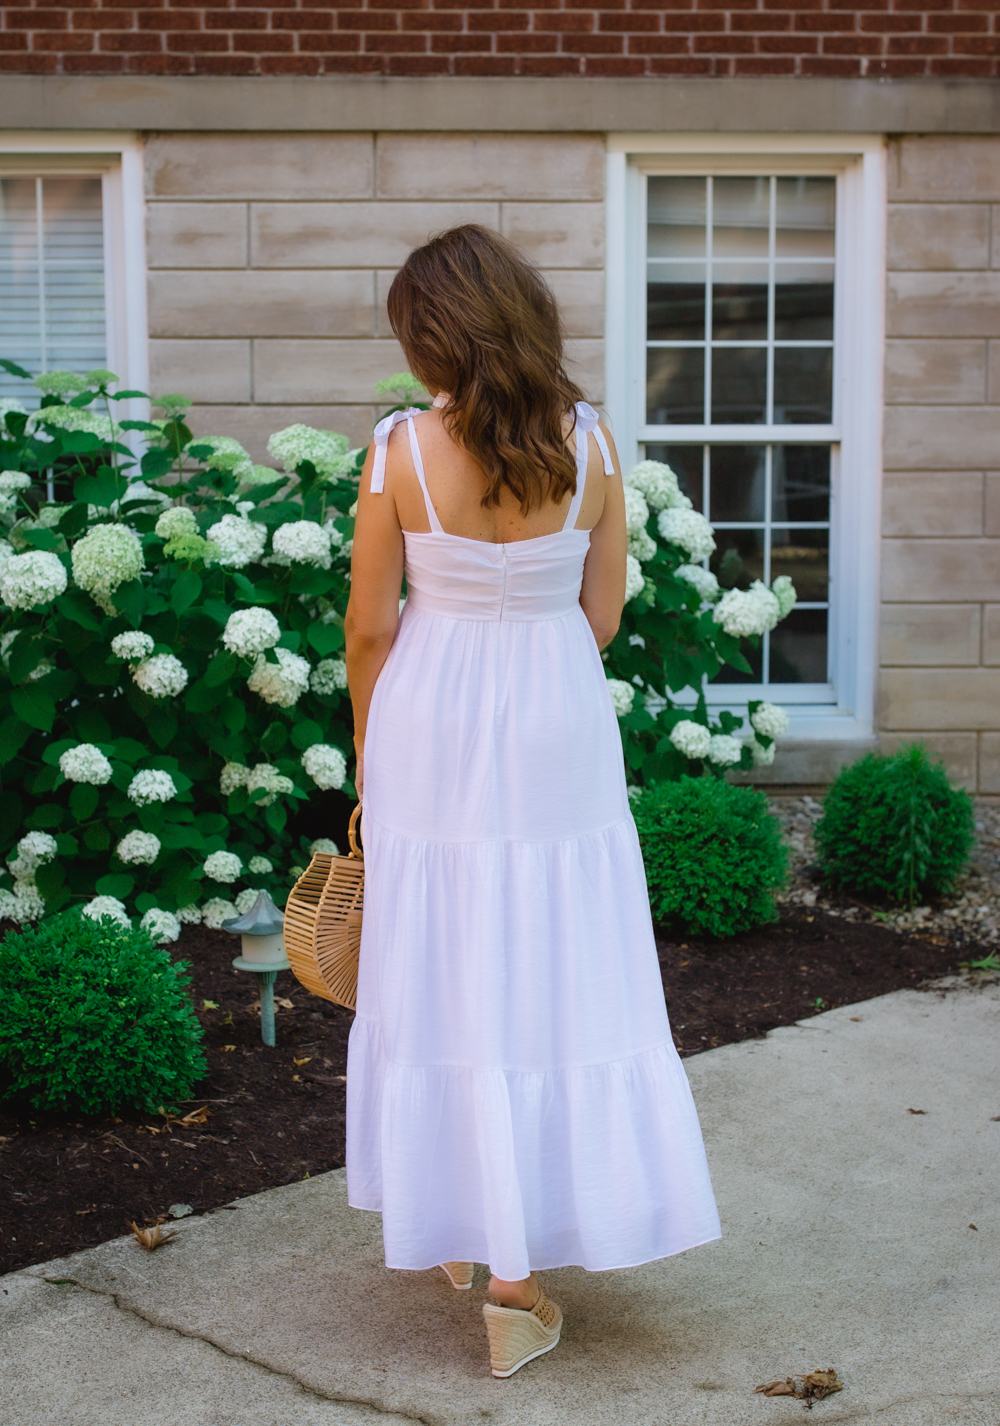 Summer Style Series: How To Style A Maxi Dress